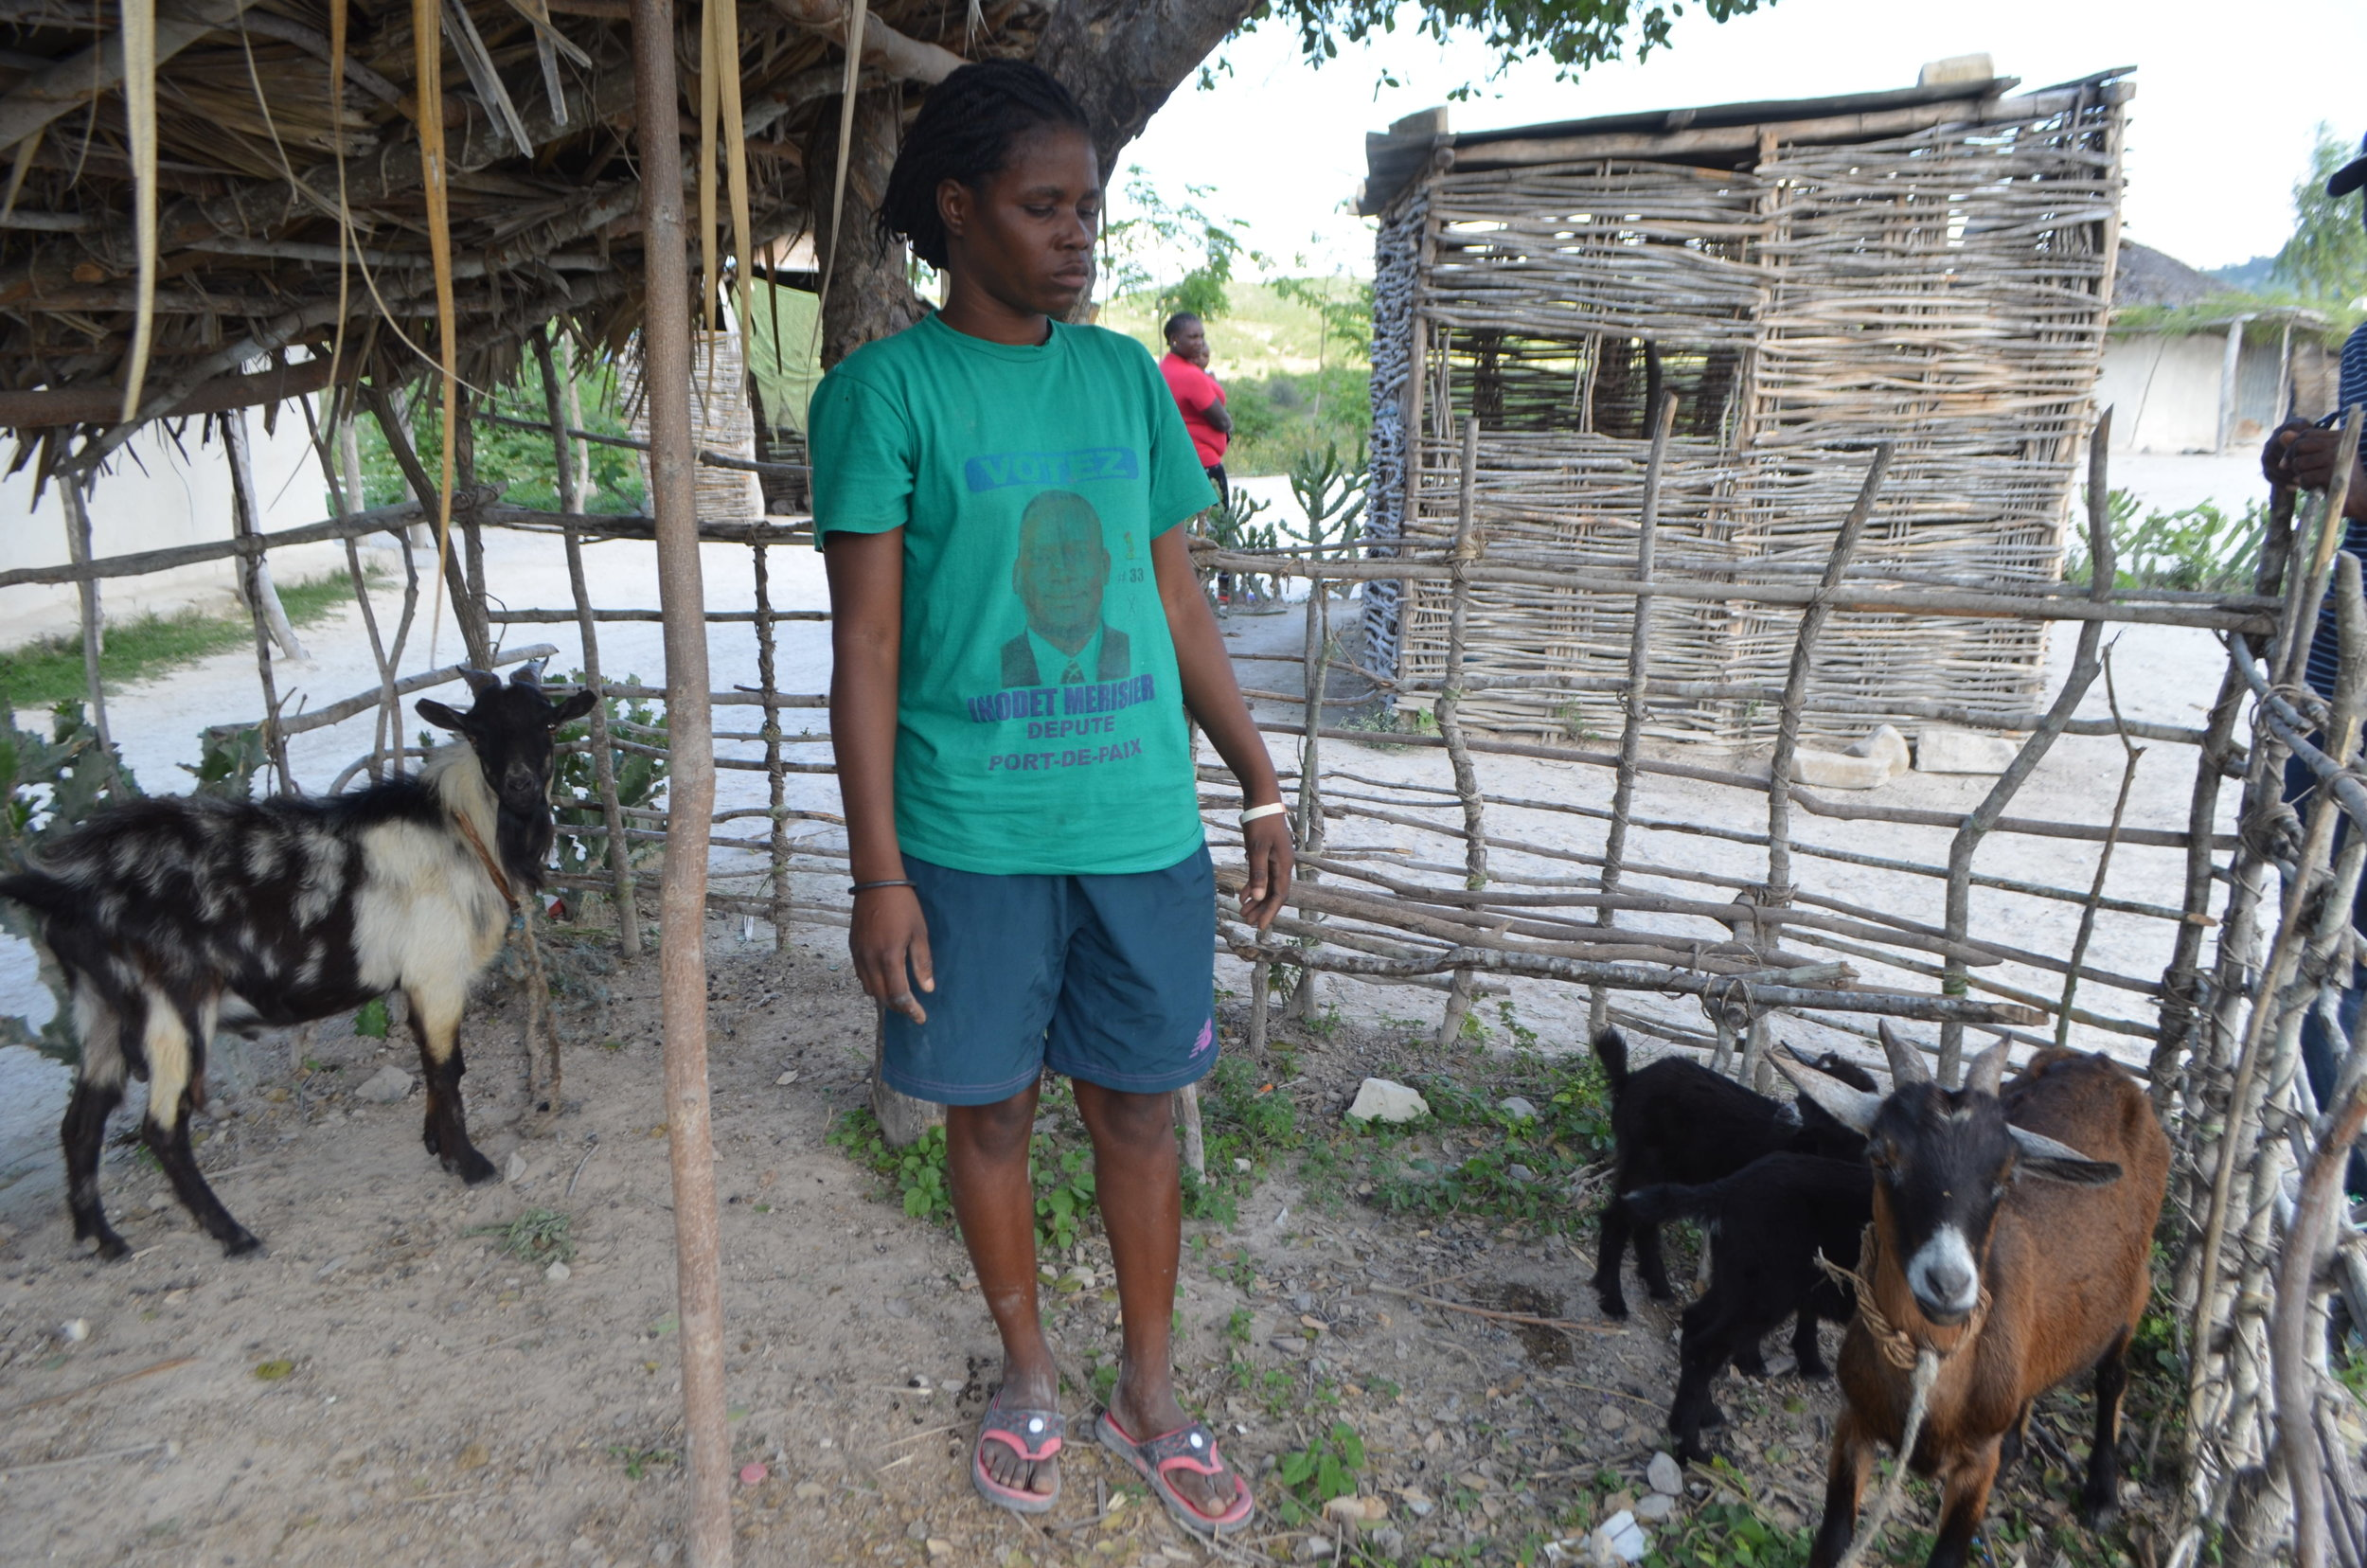 Rosita Cherry says her livestock help her pay tuition for her children.